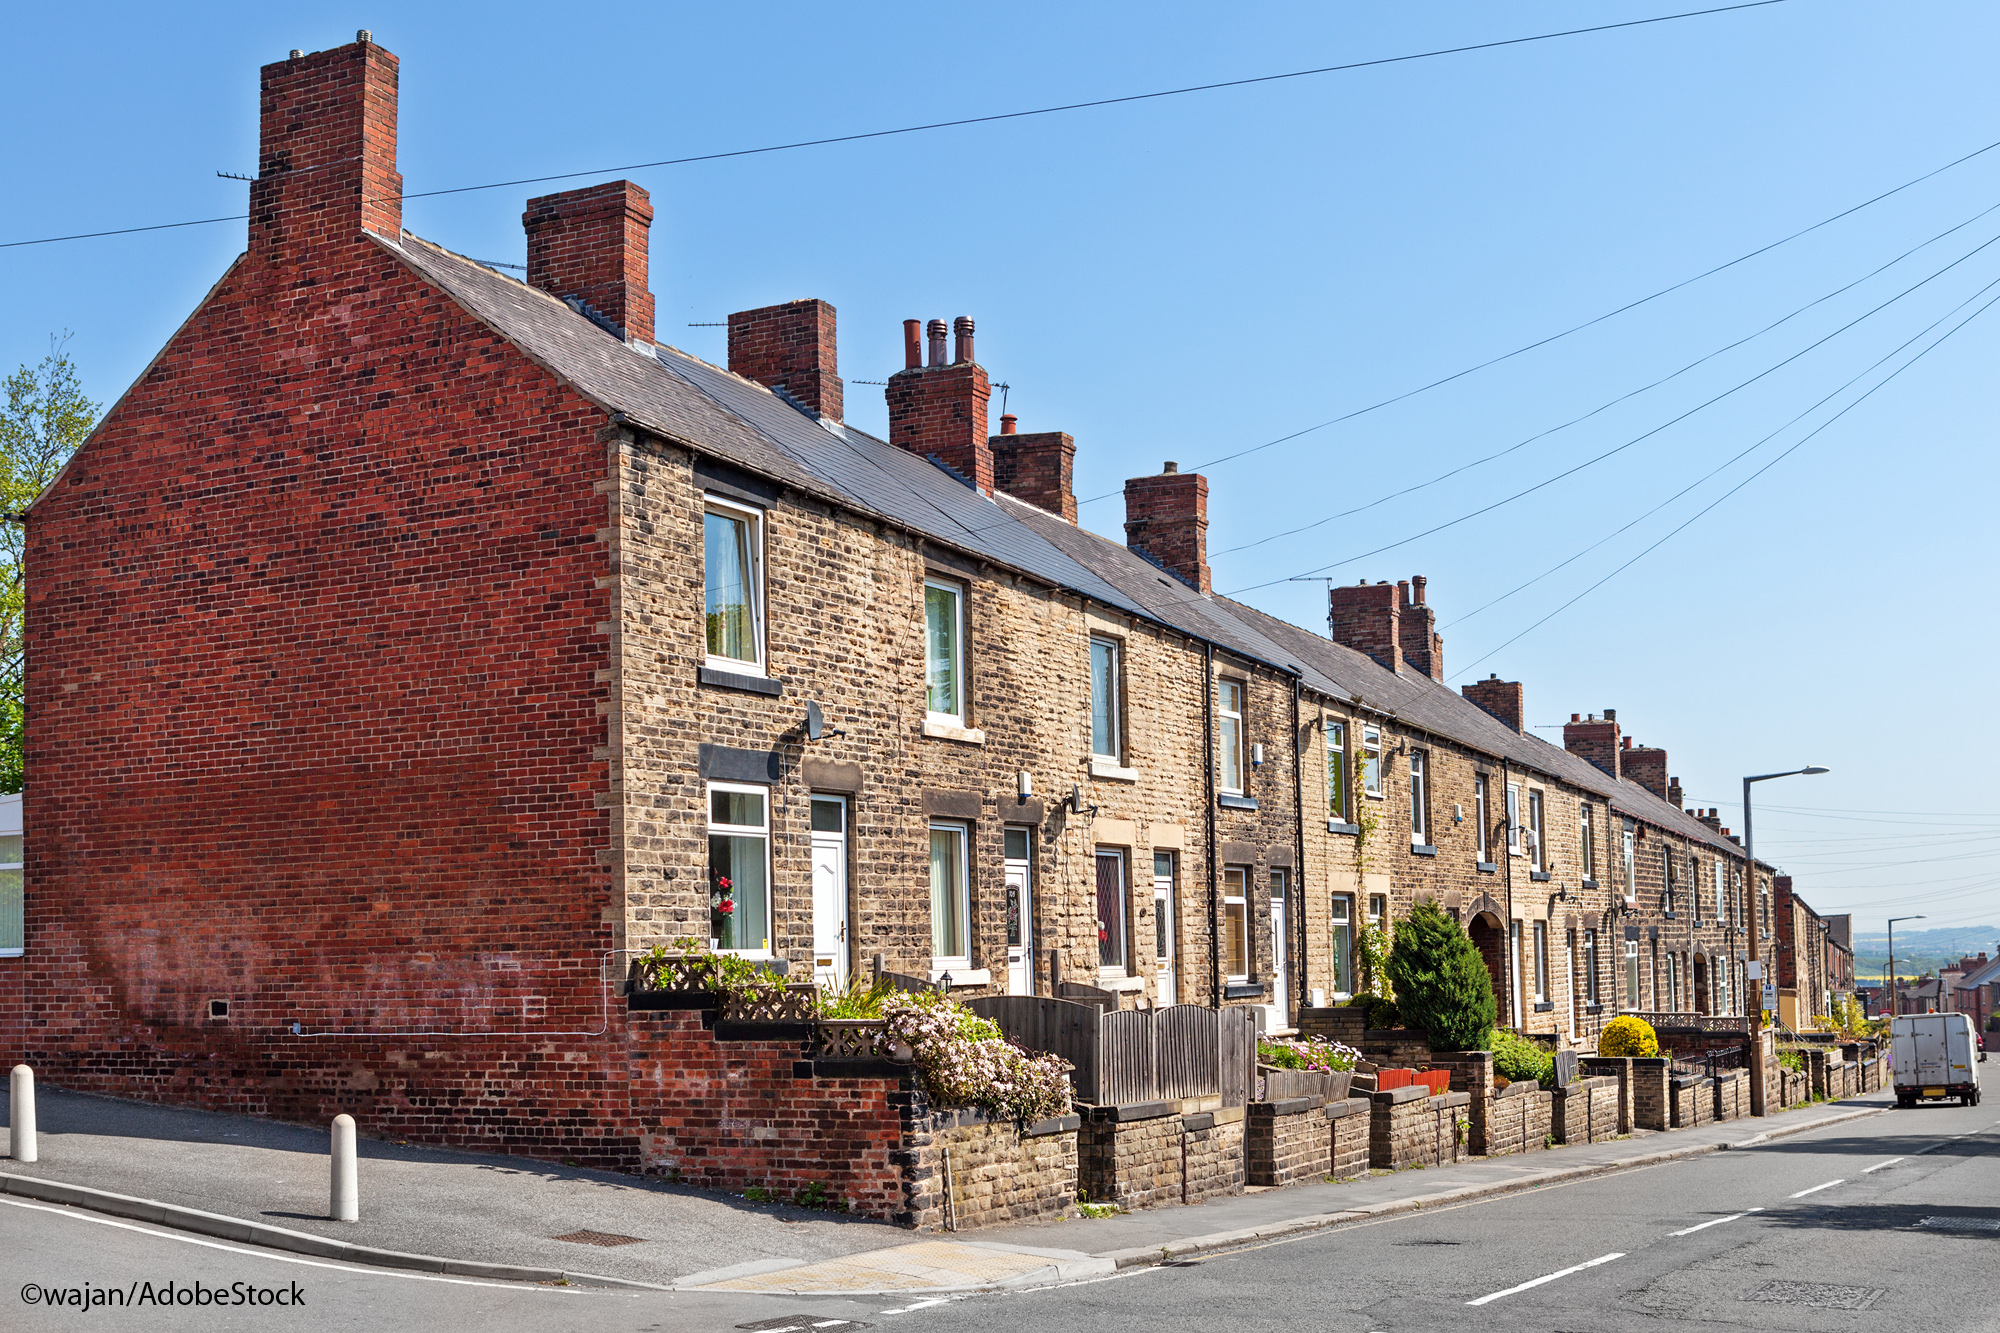 HFI: A radical new housing approach is needed to deliver new 300,000 homes target